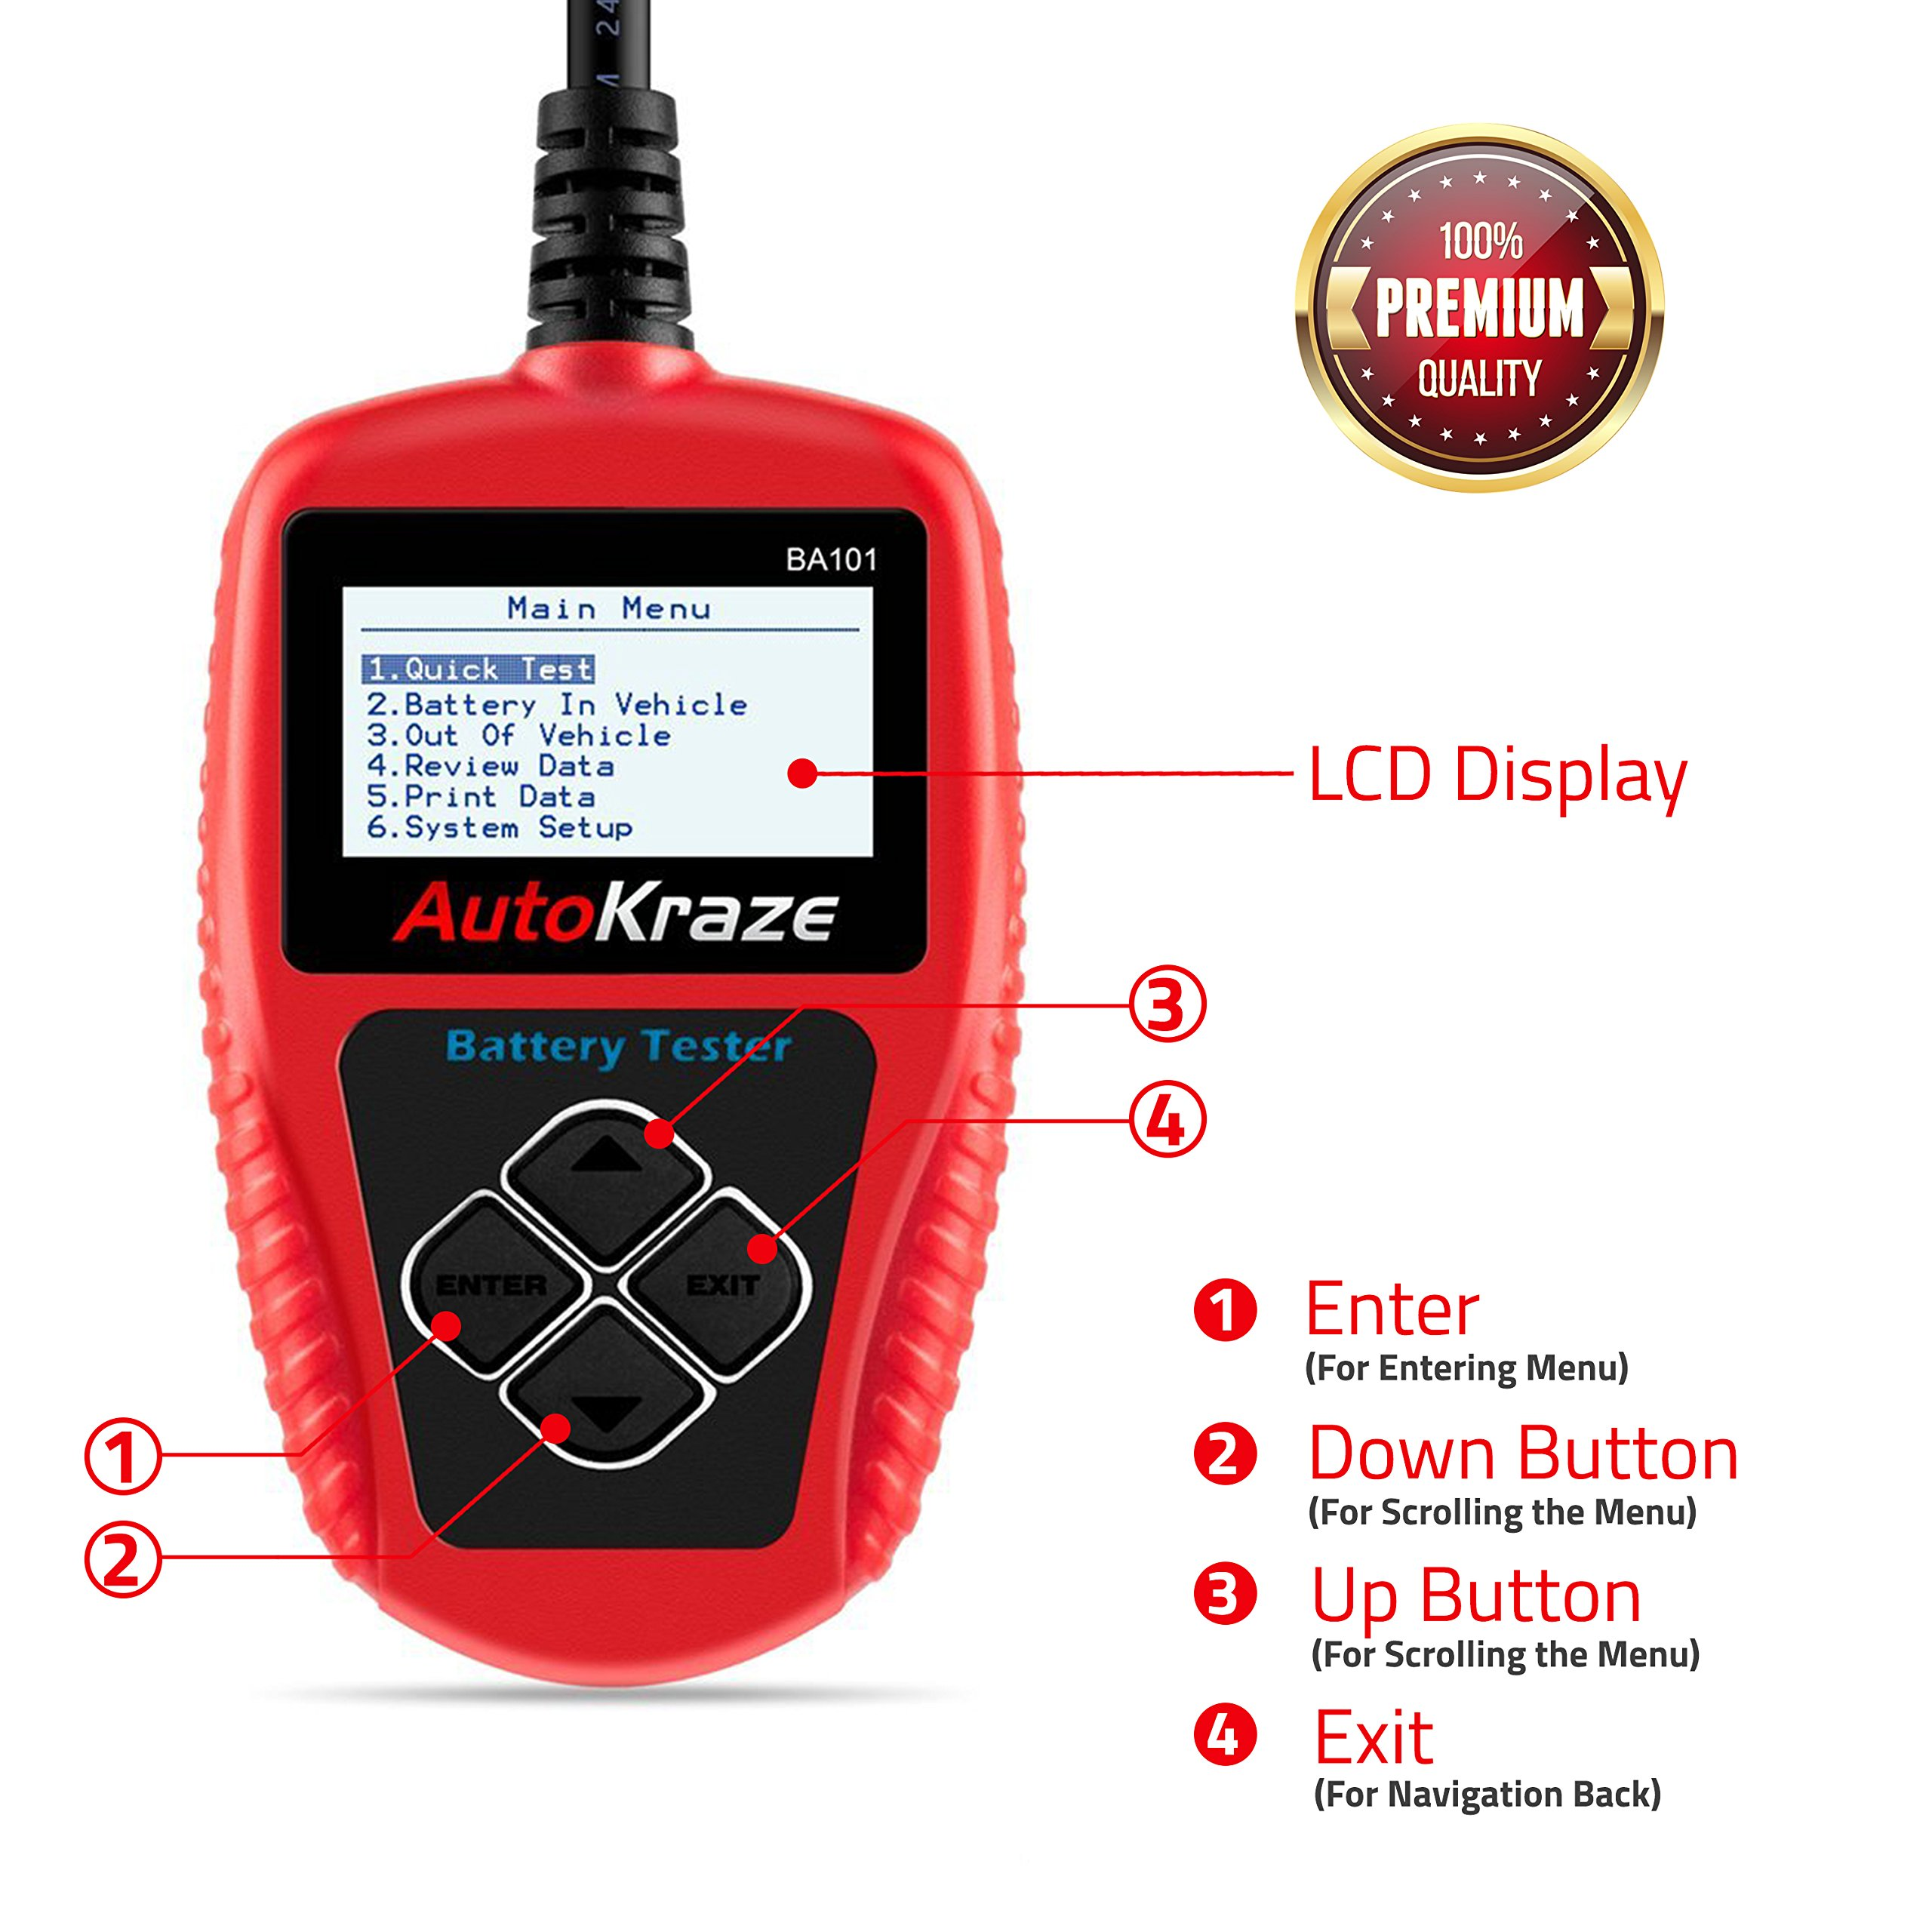 AutoKraze BA101 Automotive Battery Load Tester 12V 100-2000 CCA Bad Cell Test Analyzer Tool Directly Test Car, Boat, and Motorcycle Battery Status Portable, Digital and Rechargeable Battery Tester by AutoKraze (Image #6)